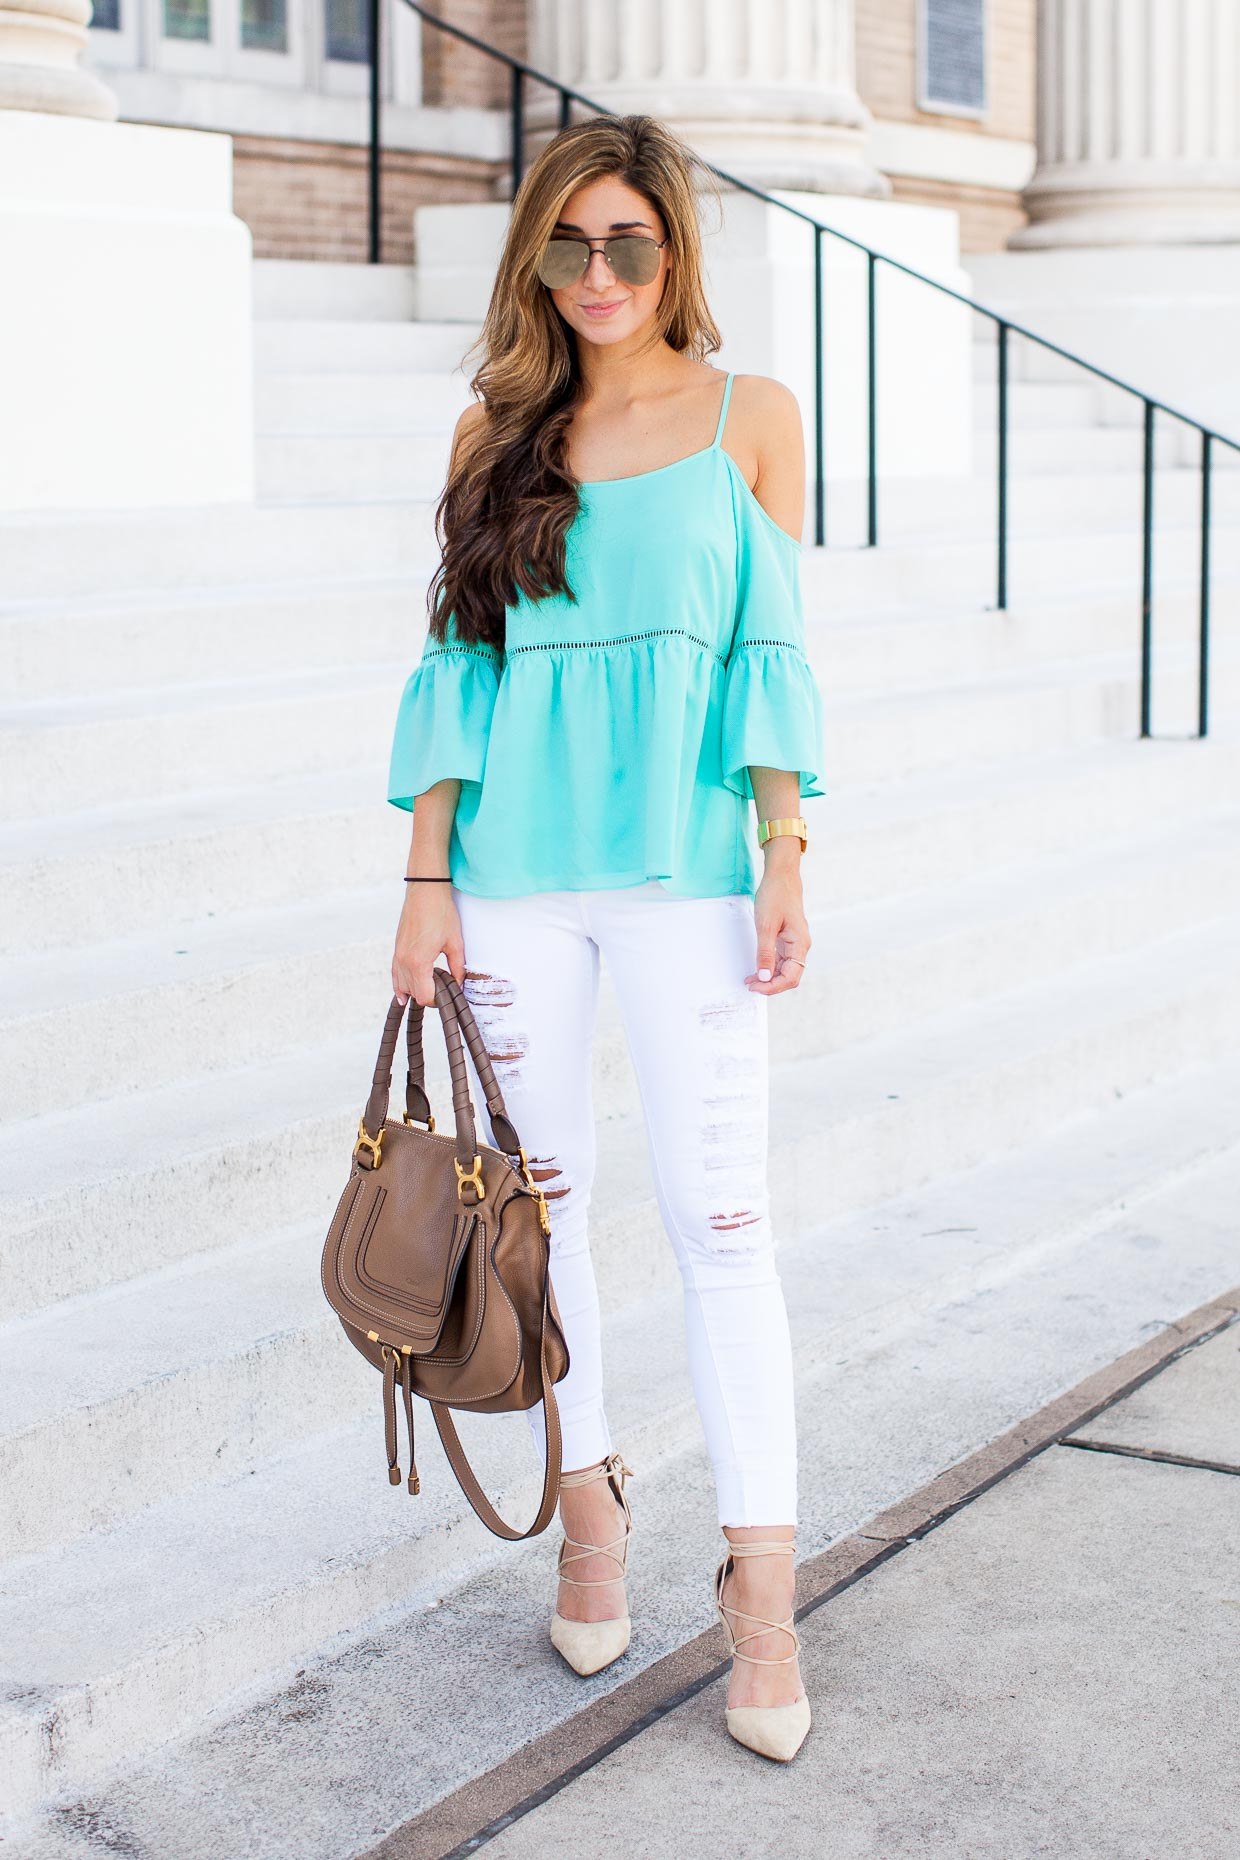 The Darling Detail The Darling Detail is wearing a Cold Shoulder Peasant Top and FRAME 'Le Color Rip' Skinny Jeans.